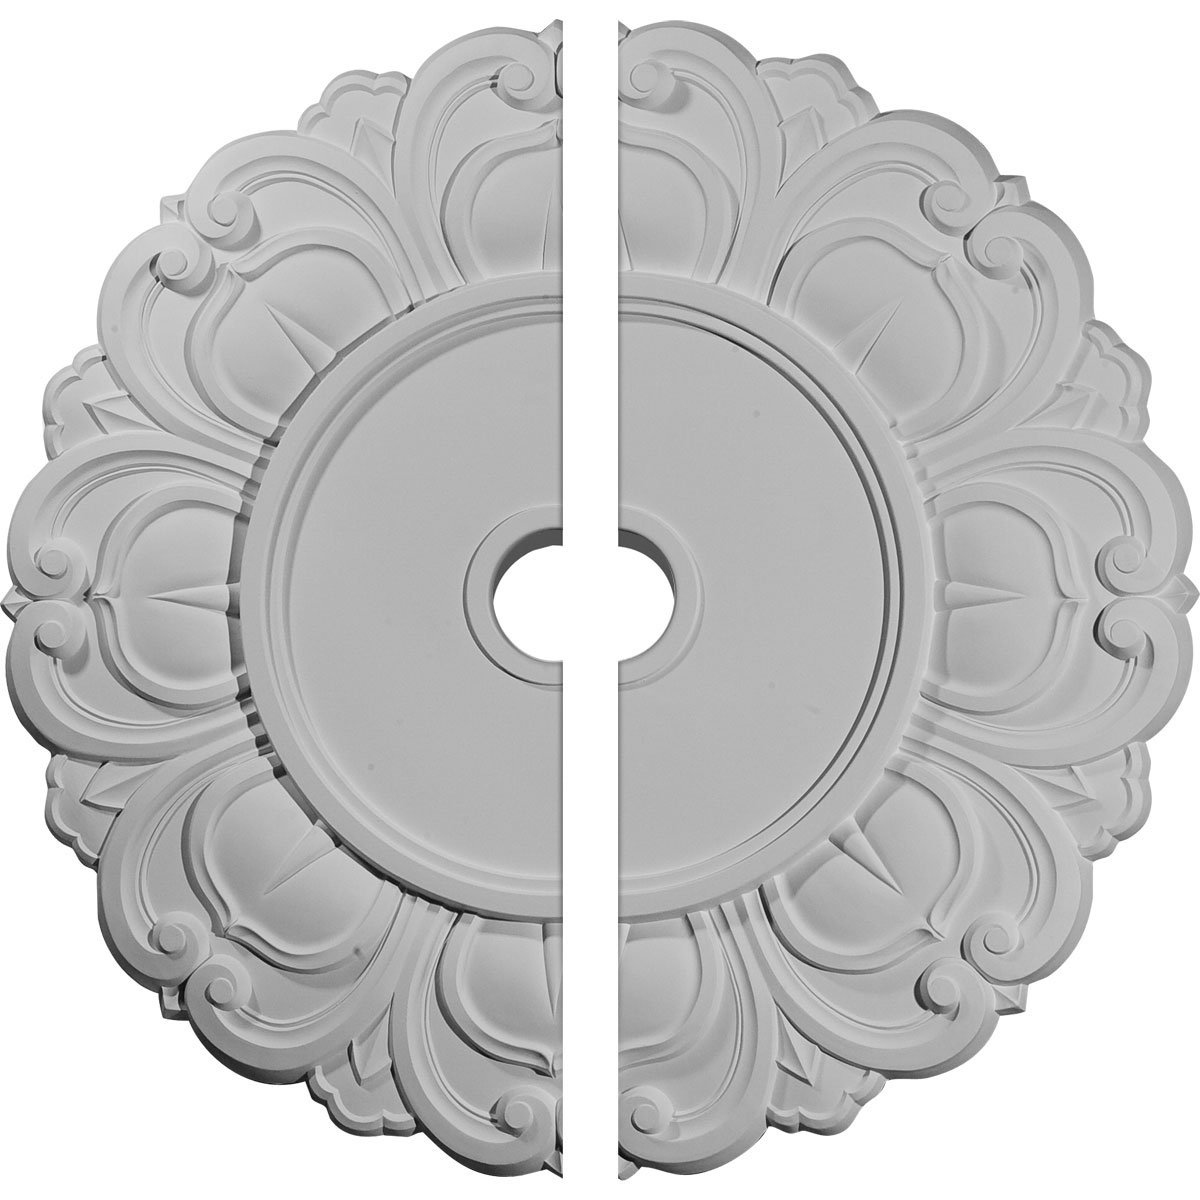 Ekena Millwork CM32AN2 32 1/4''OD x 3 5/8''ID x 1 1/8''P Angel Ceiling Medallion, Two Piece (Fits Canopies up to 15 3/4''), Factory Primed White